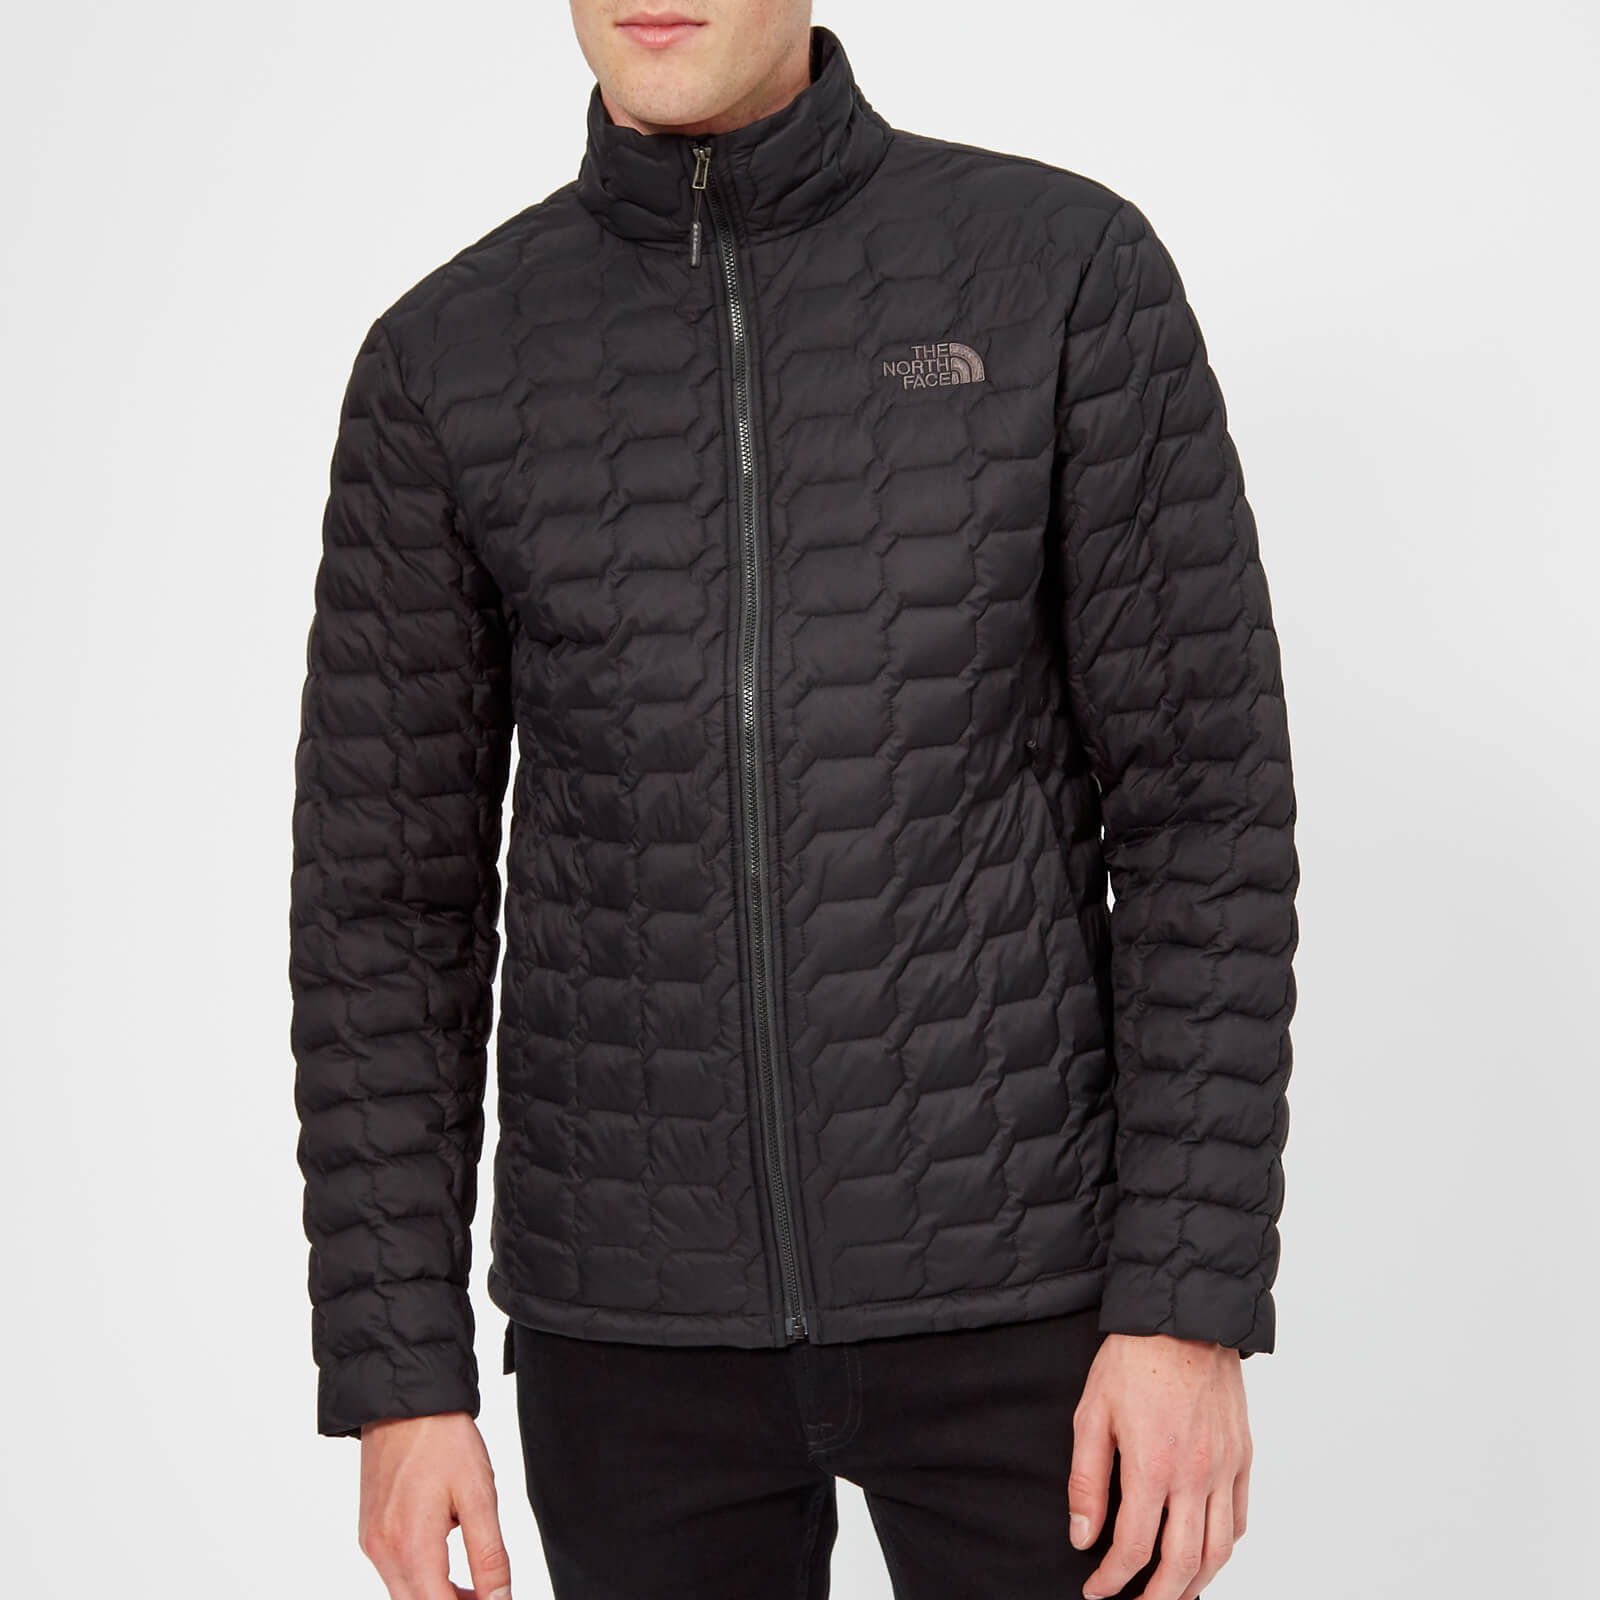 a94cc2dba The North Face Men's Thermoball Jacket - TNF Black Matte